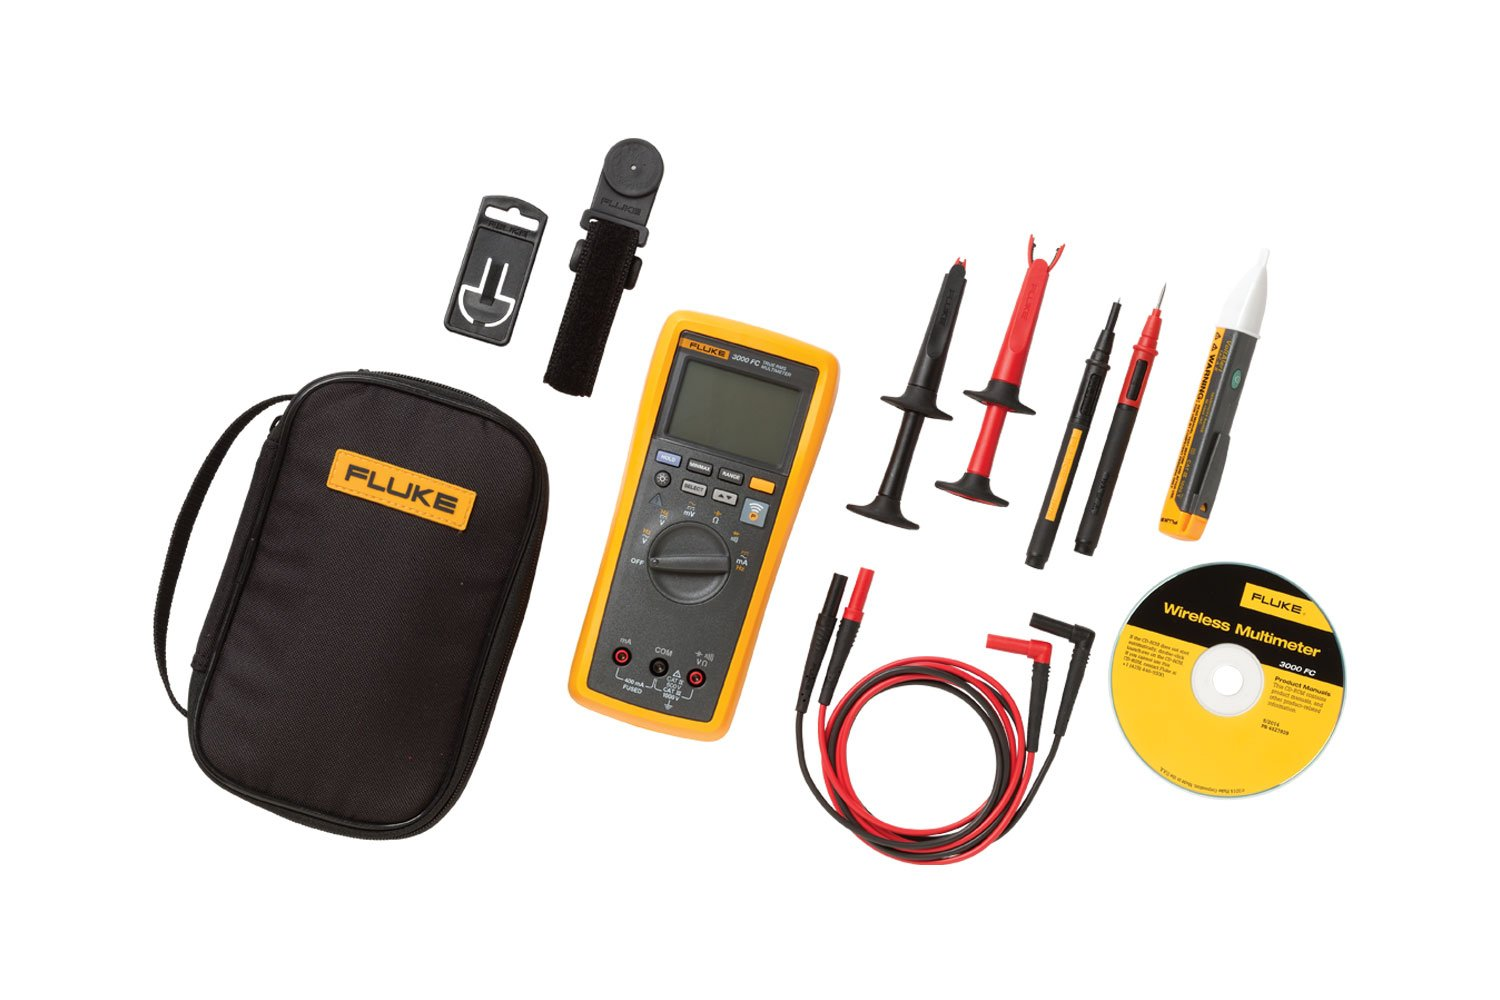 Fluke 3000 Fc 1ac2 Combo Kit Laptop Multimeter Tests Checking Voltage And Short Circuits